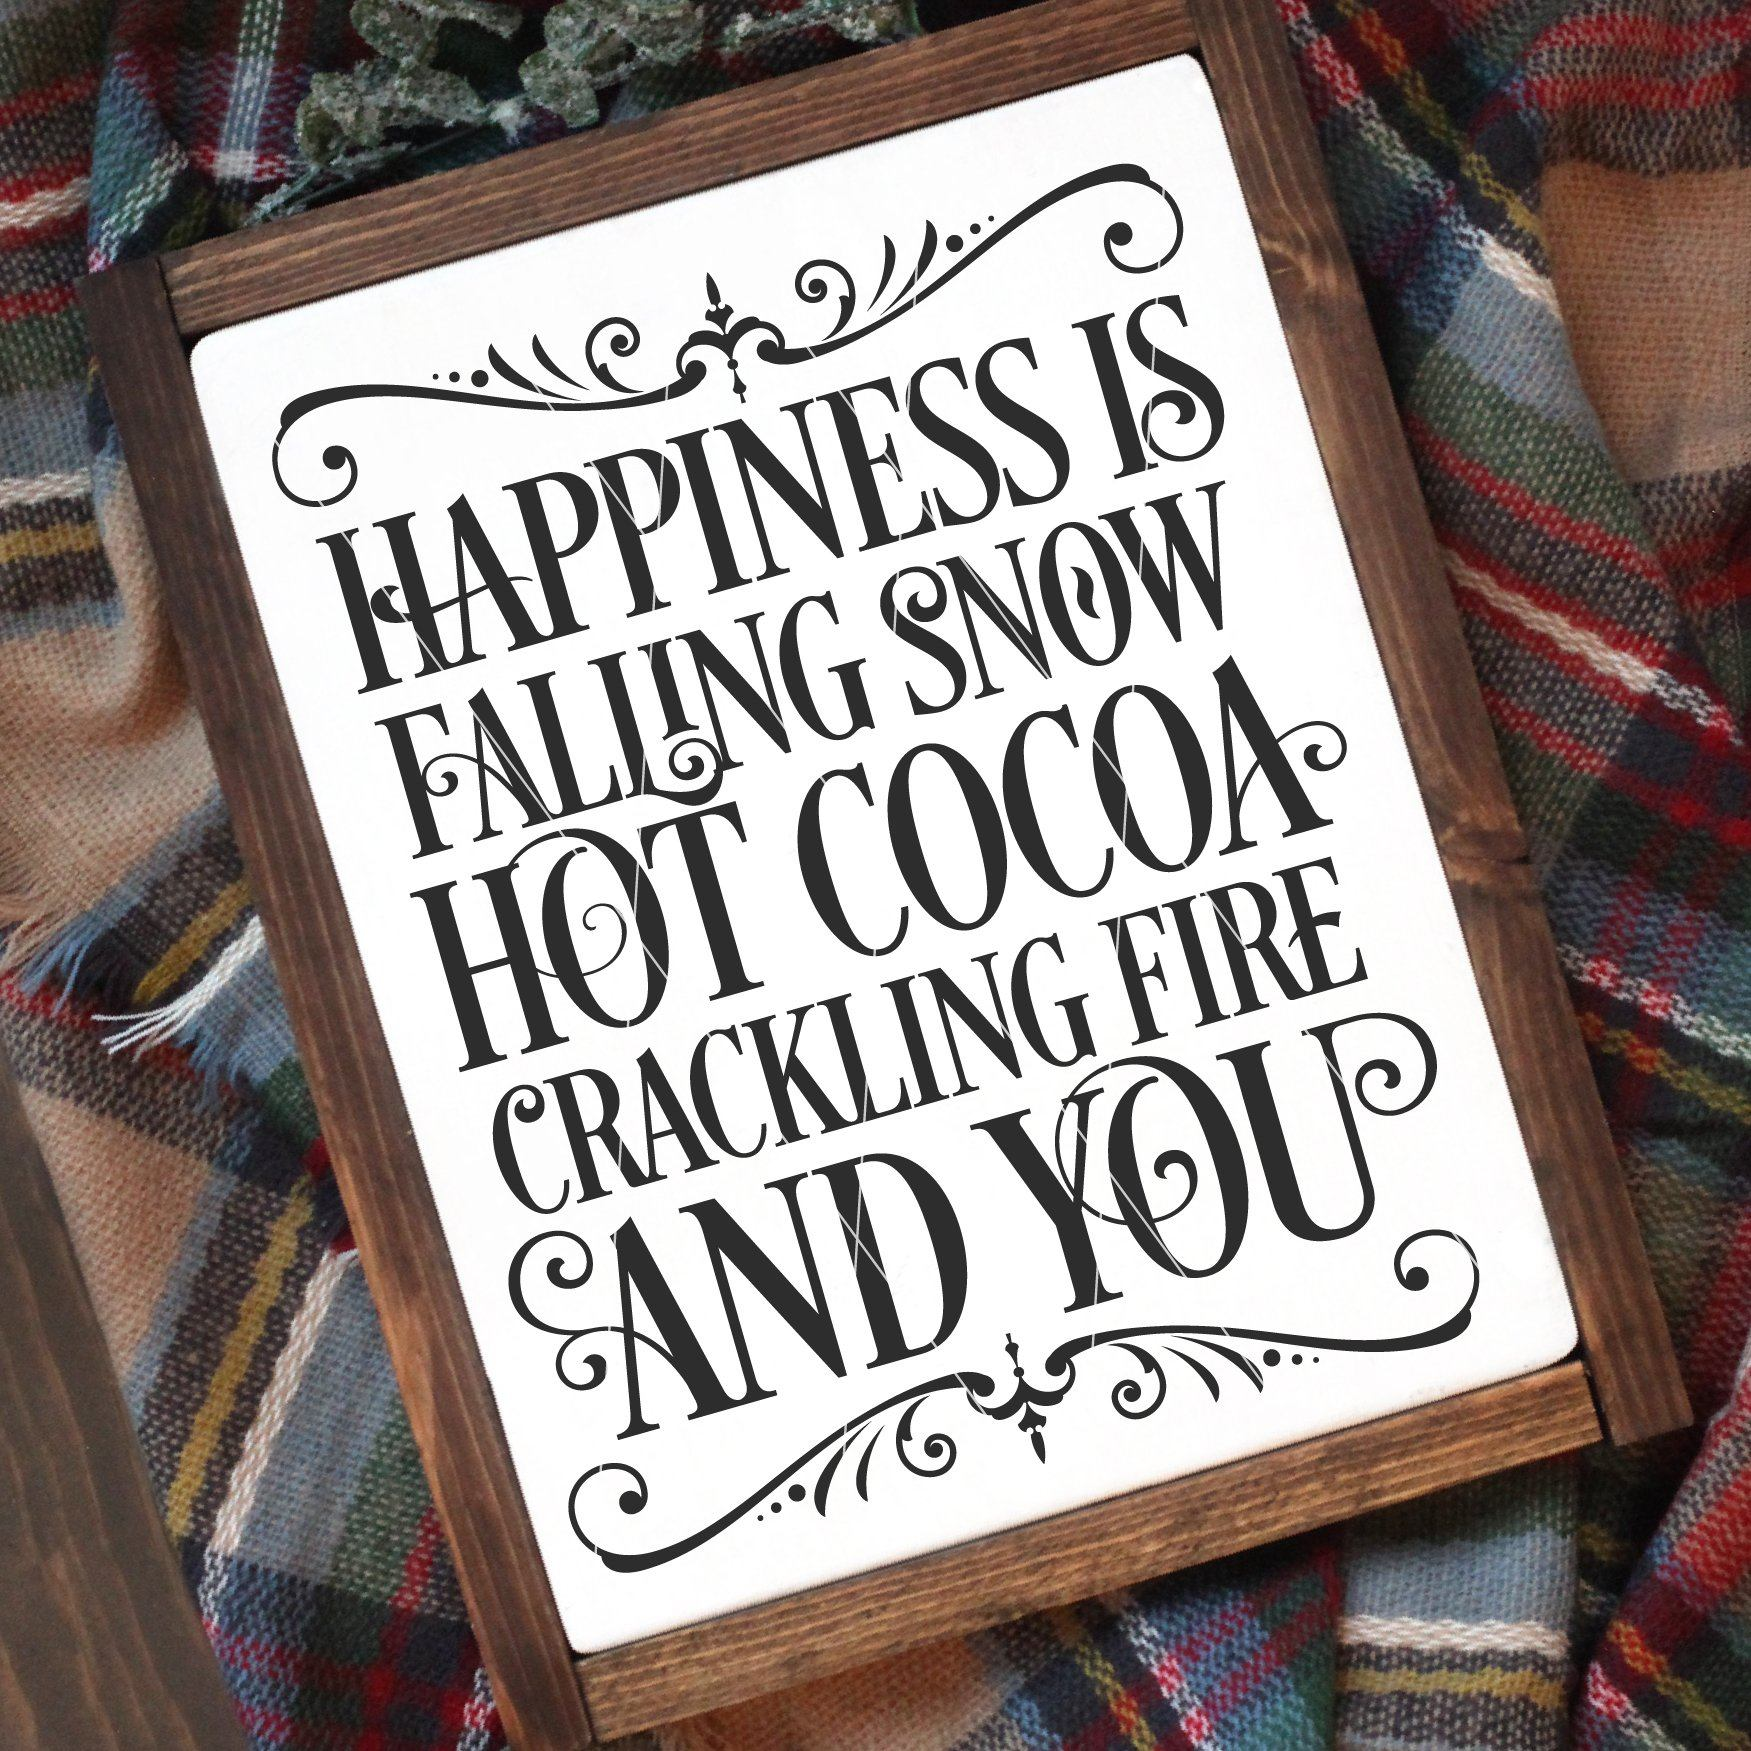 Happiness is Falling Snow, Hot Cocoa, Crackling Fire, and You SVG File - Commercial Use SVG Files